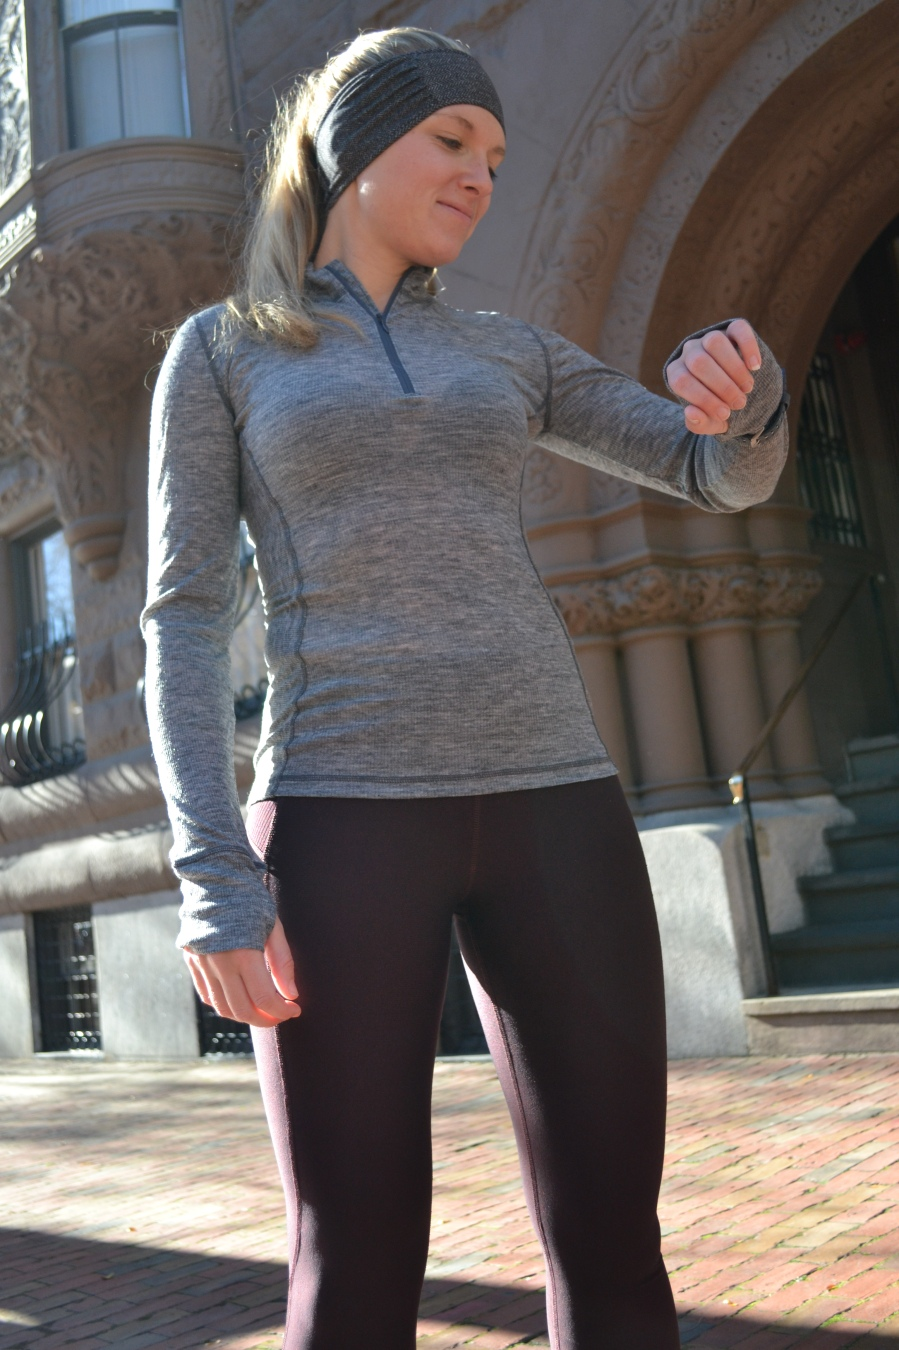 Winter Running Gear for men and women